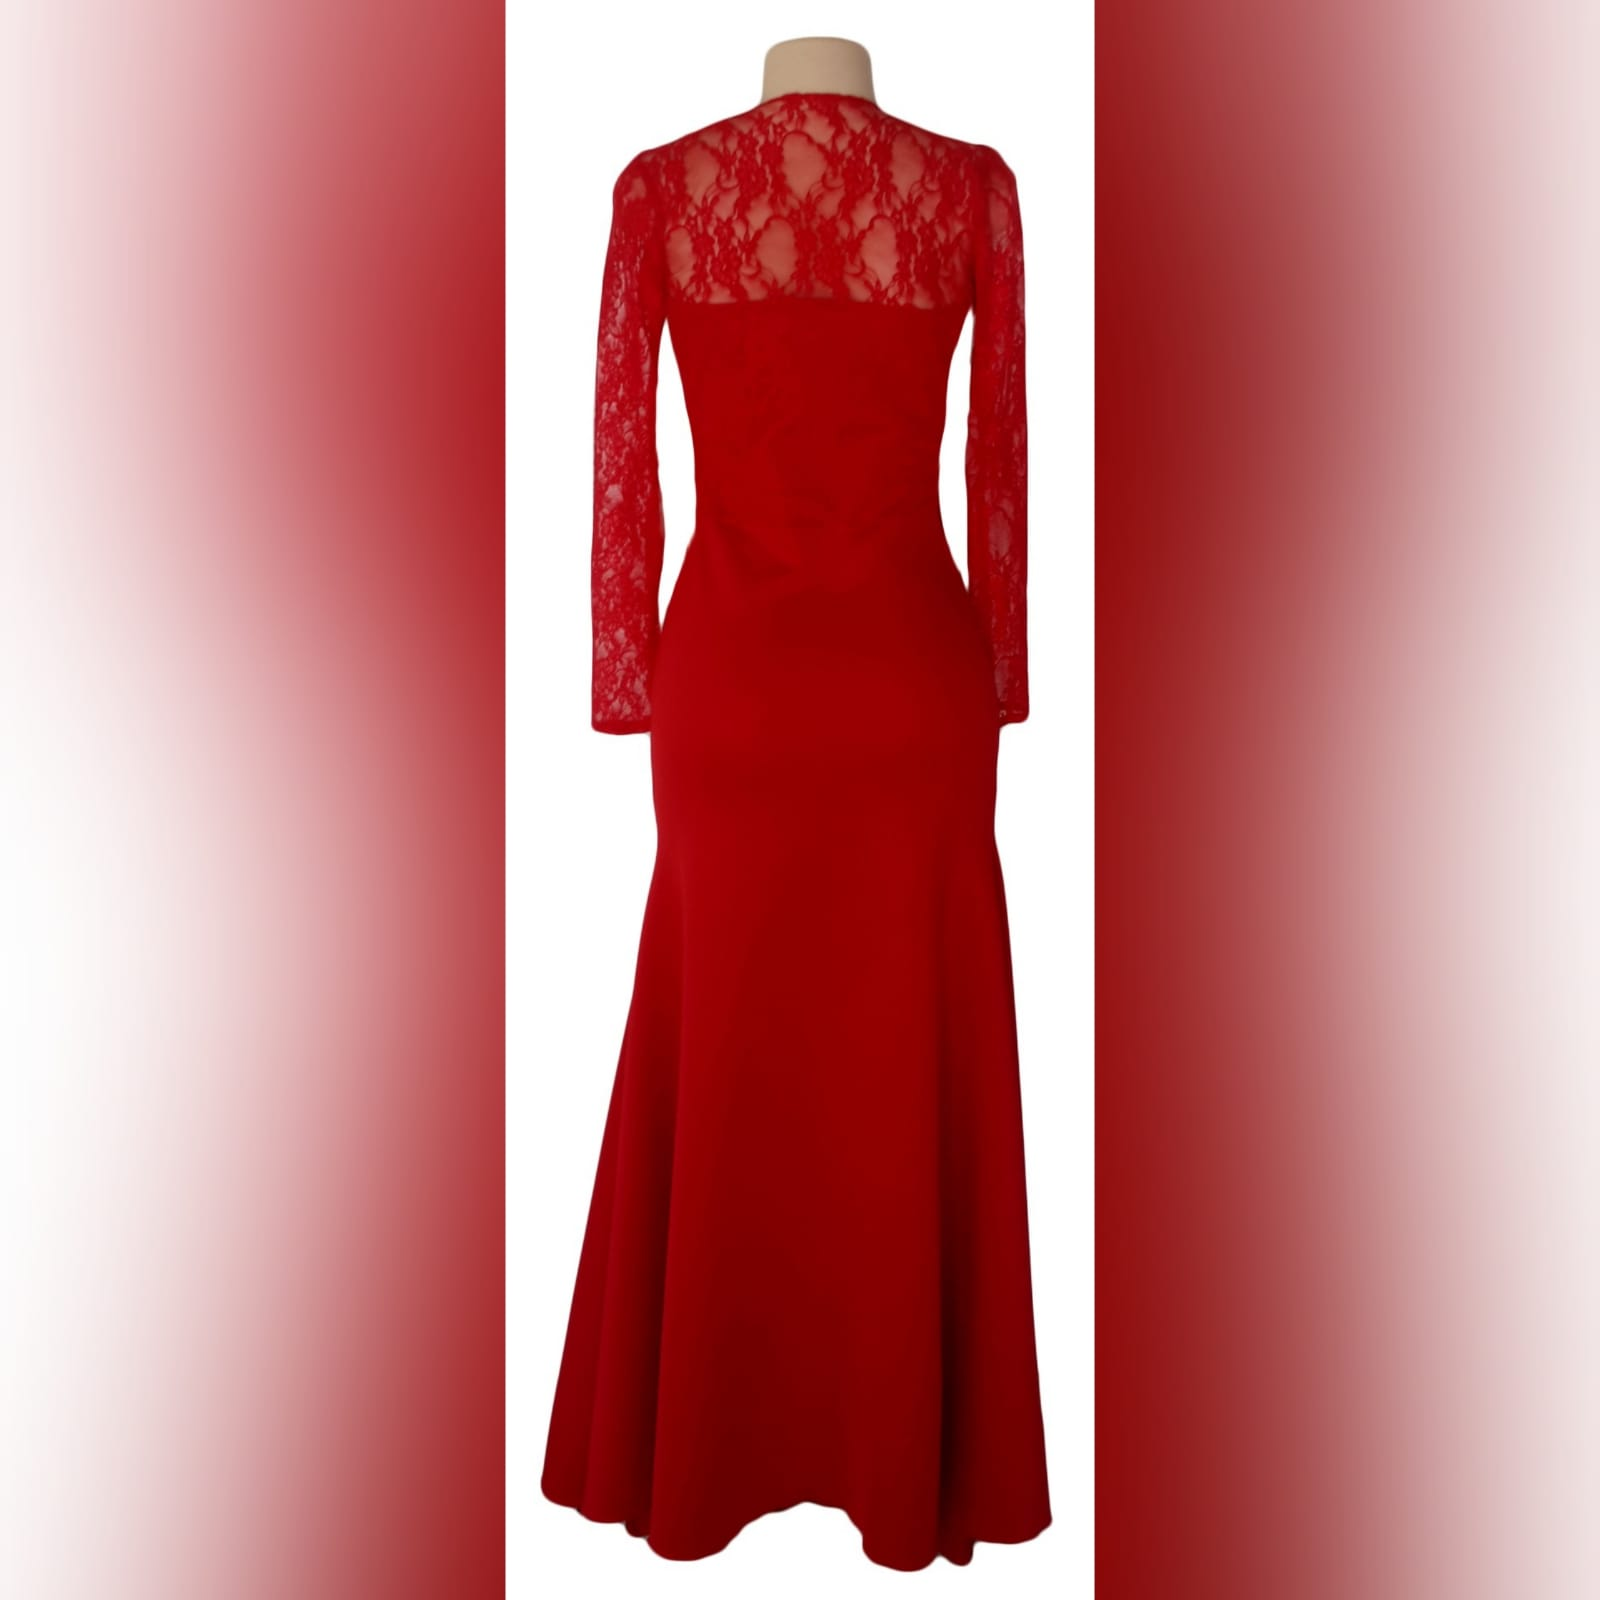 Long red cross busted evening party dress 4 long red cross busted evening party dress with long lace sleeves. With back neckline in lace. With a slit